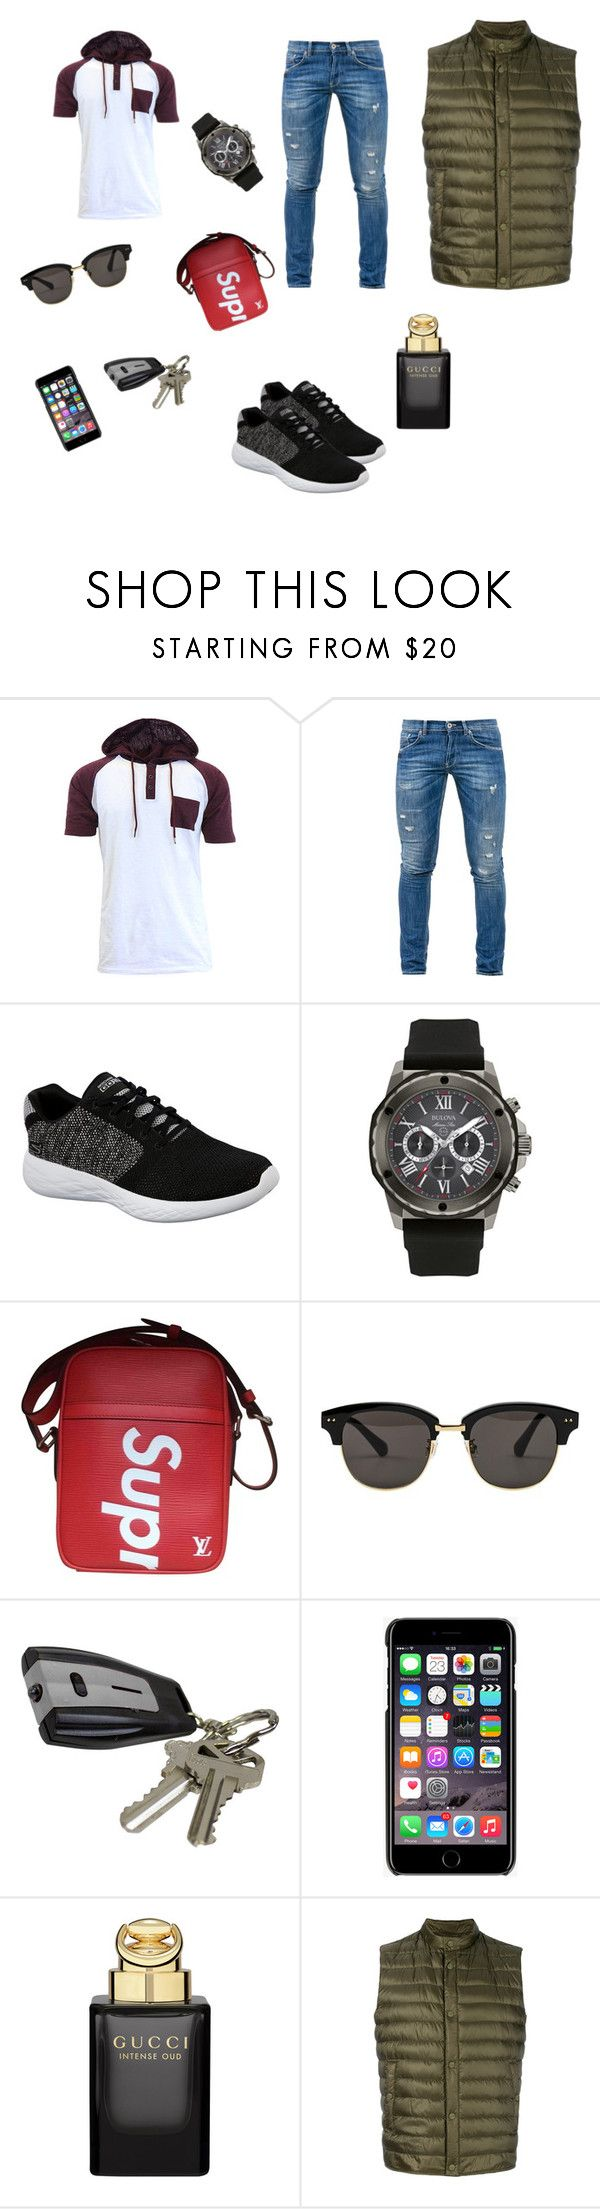 """""""Untitled #22"""" by poljicbenjamin ❤ liked on Polyvore featuring Dondup, Skechers, Bulova, Supreme, Gentle Monster, Dolce&Gabbana, Gucci, Herno, men's fashion and menswear"""